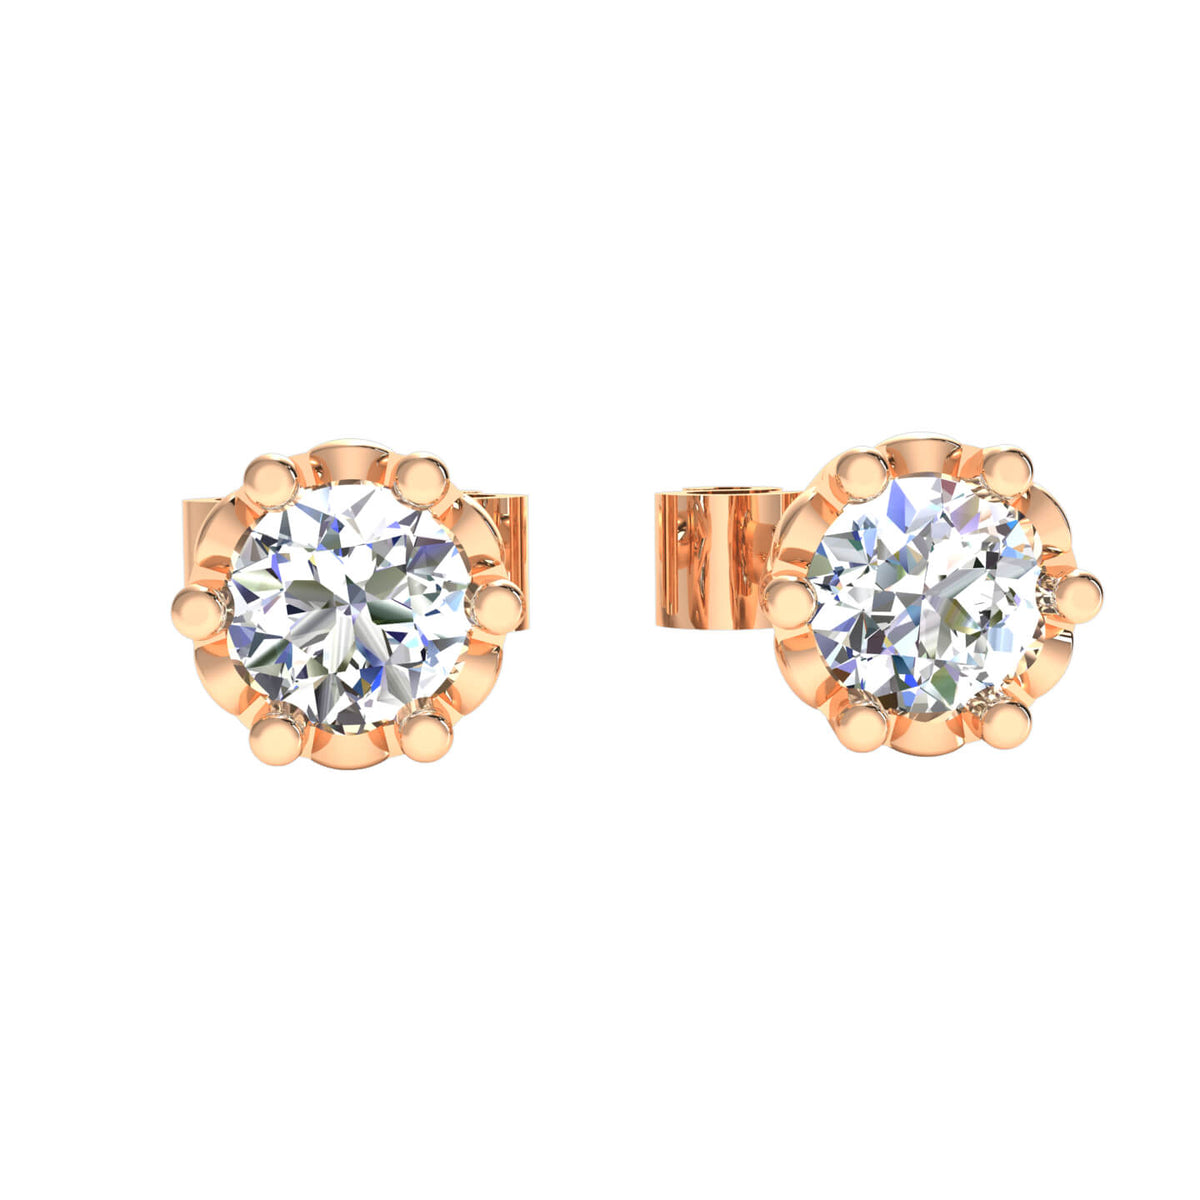 0.25 Ct Solitaire Classic Round H SI2 Diamond Stud Earrings 10k Gold